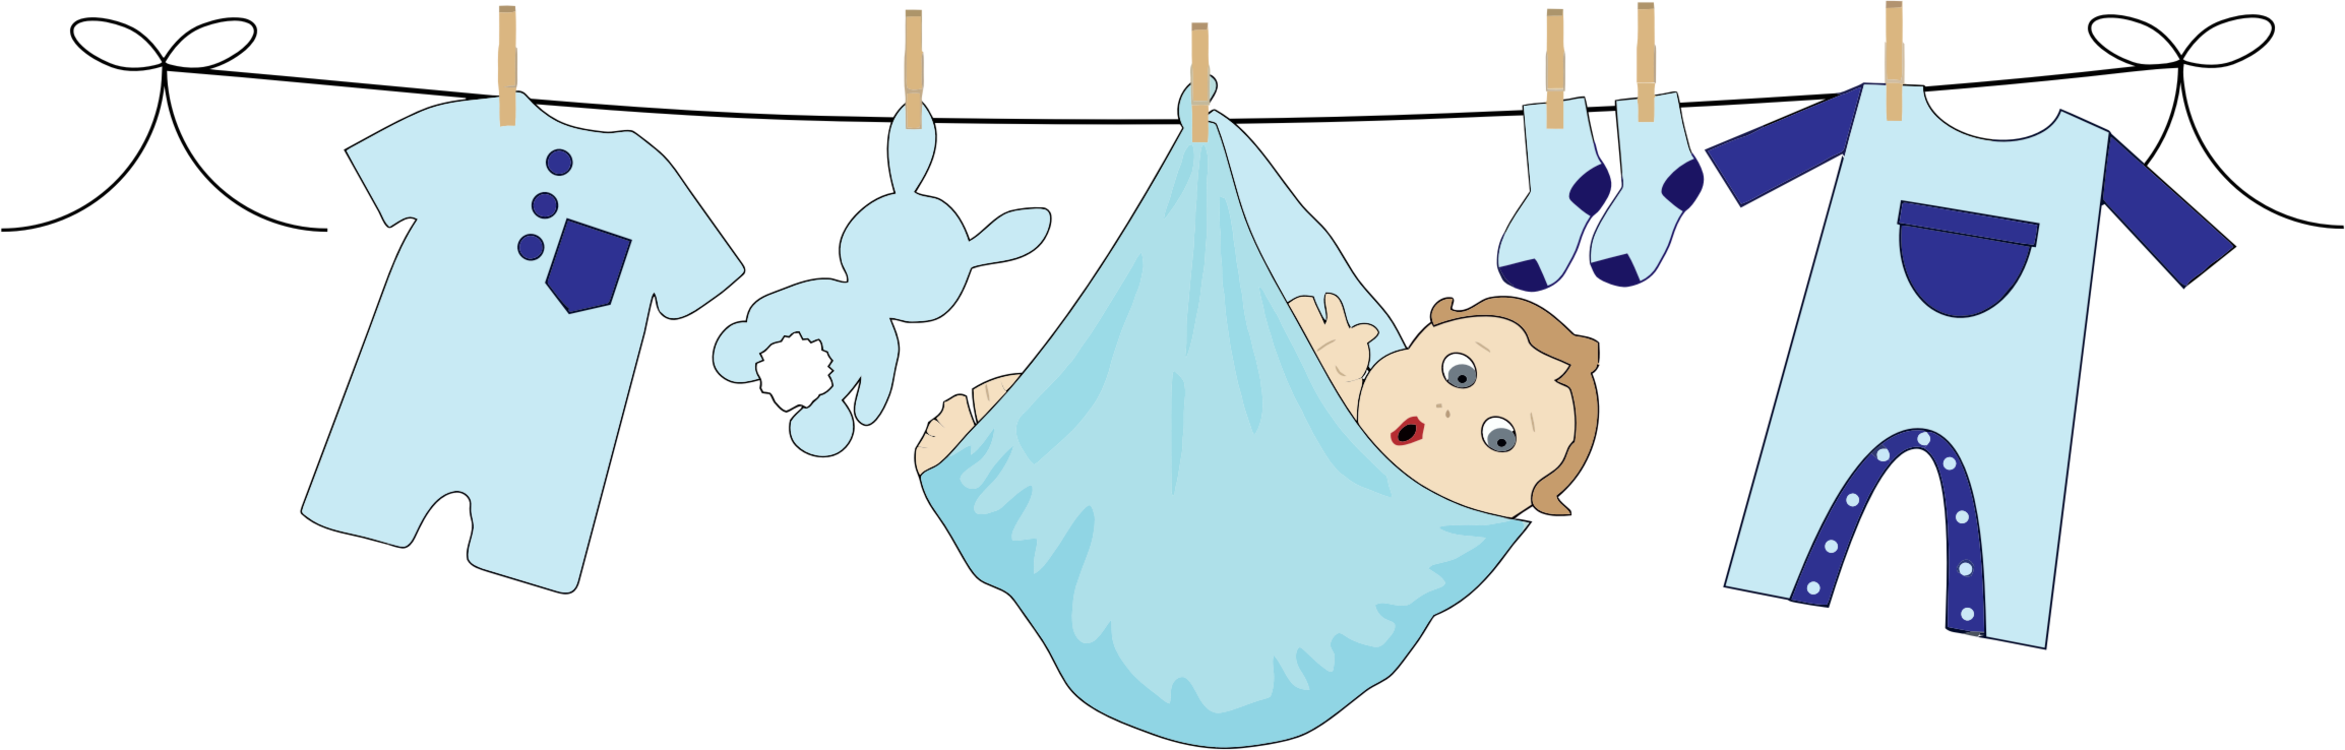 Diaper clipart baby girl. Infant boy child computer